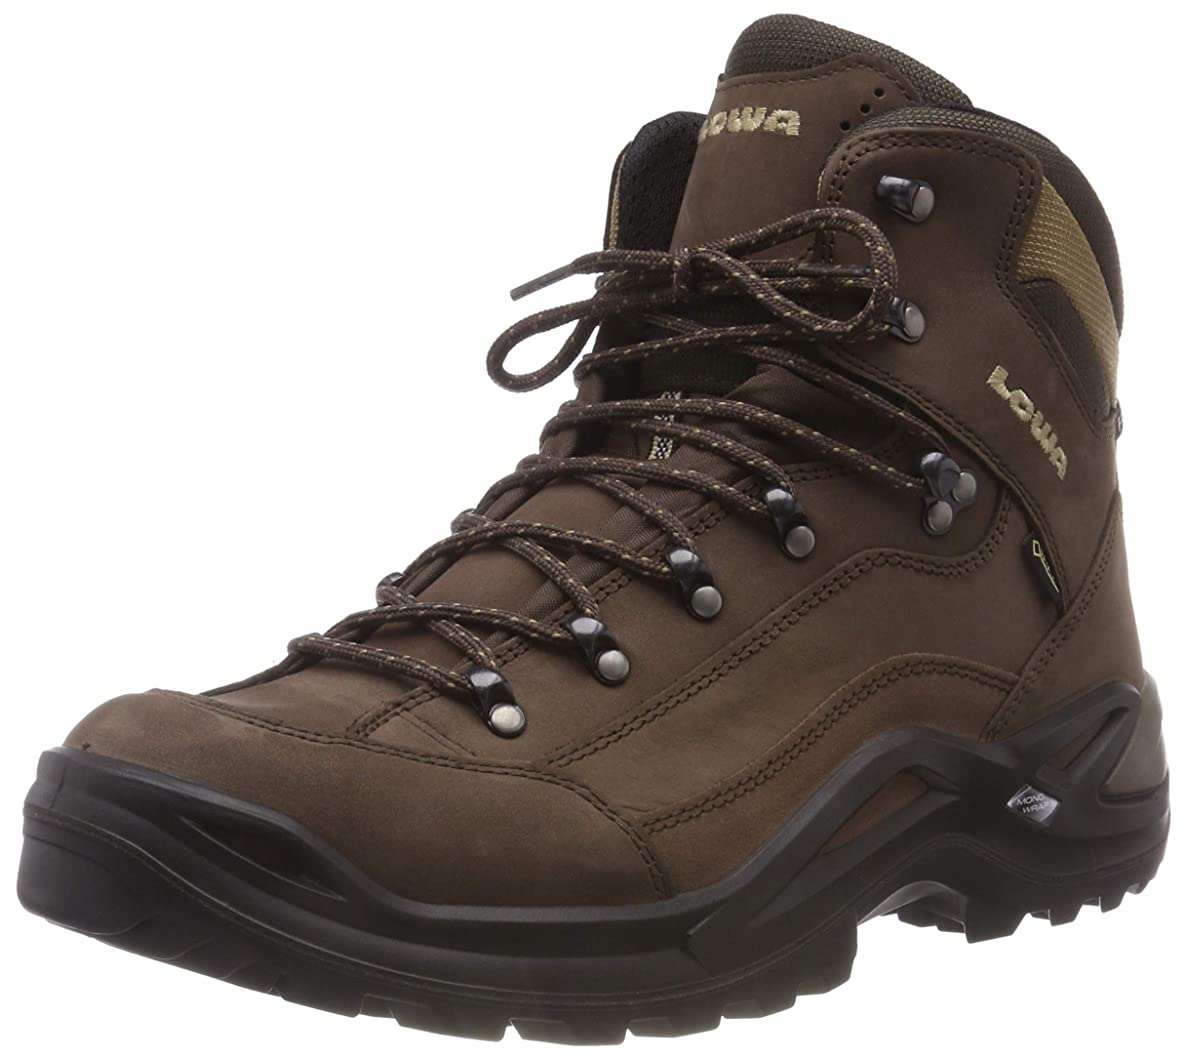 Lowa Men's Renegade GTX Mid Hiking Boot